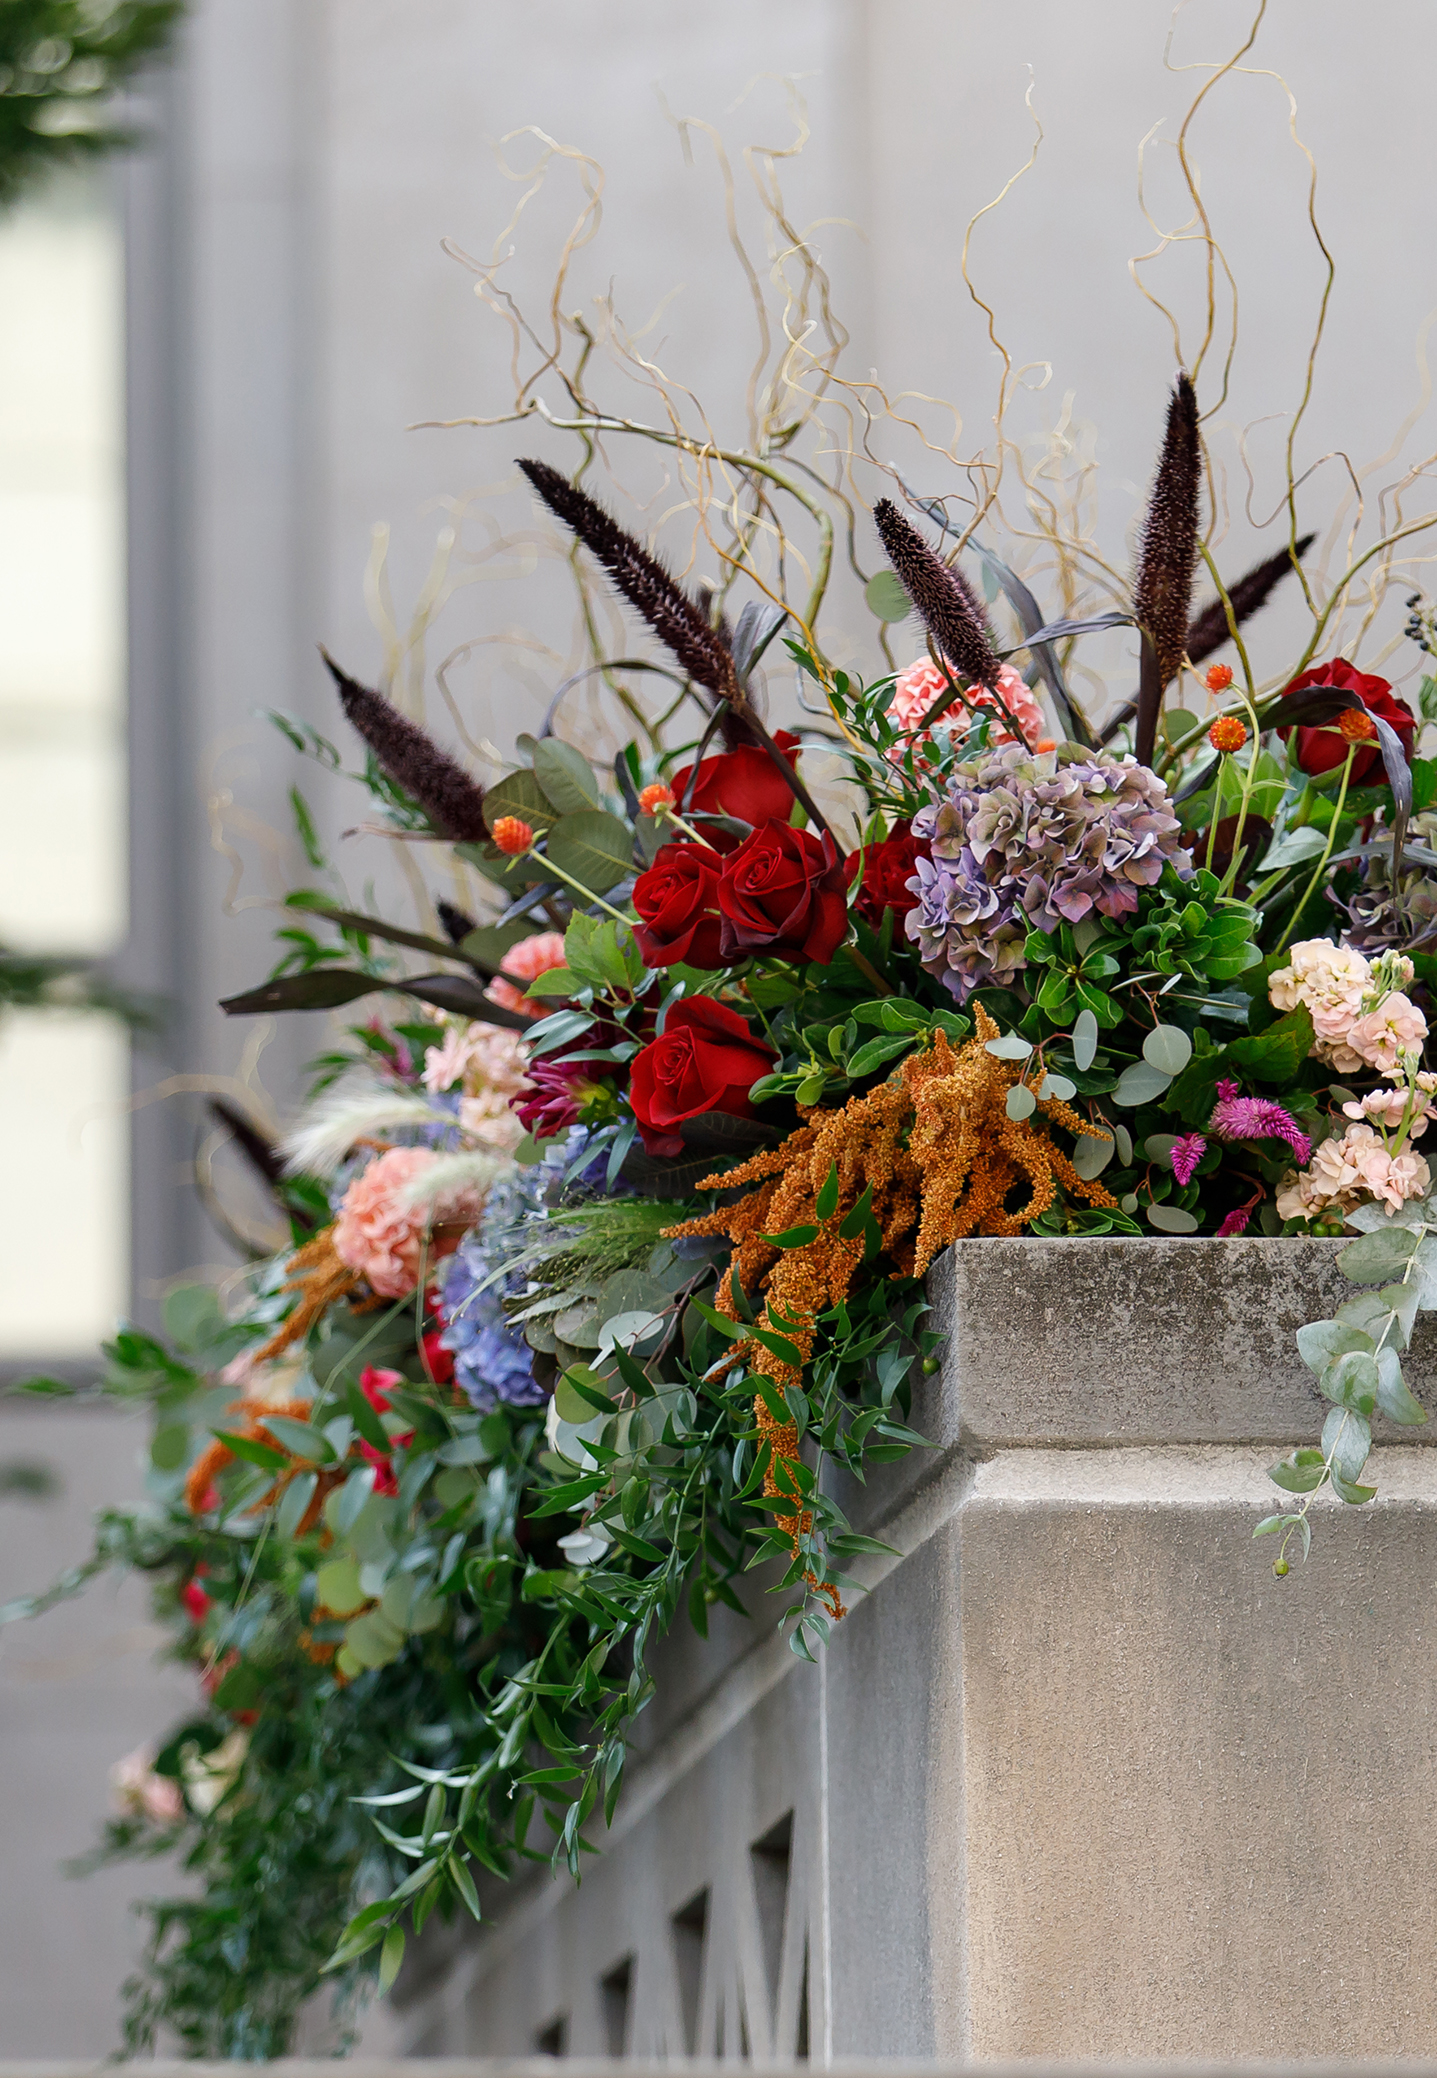 Fall wedding flowers in rich jewel tones designed as long arrangements for the outdoor ceremony balcony.